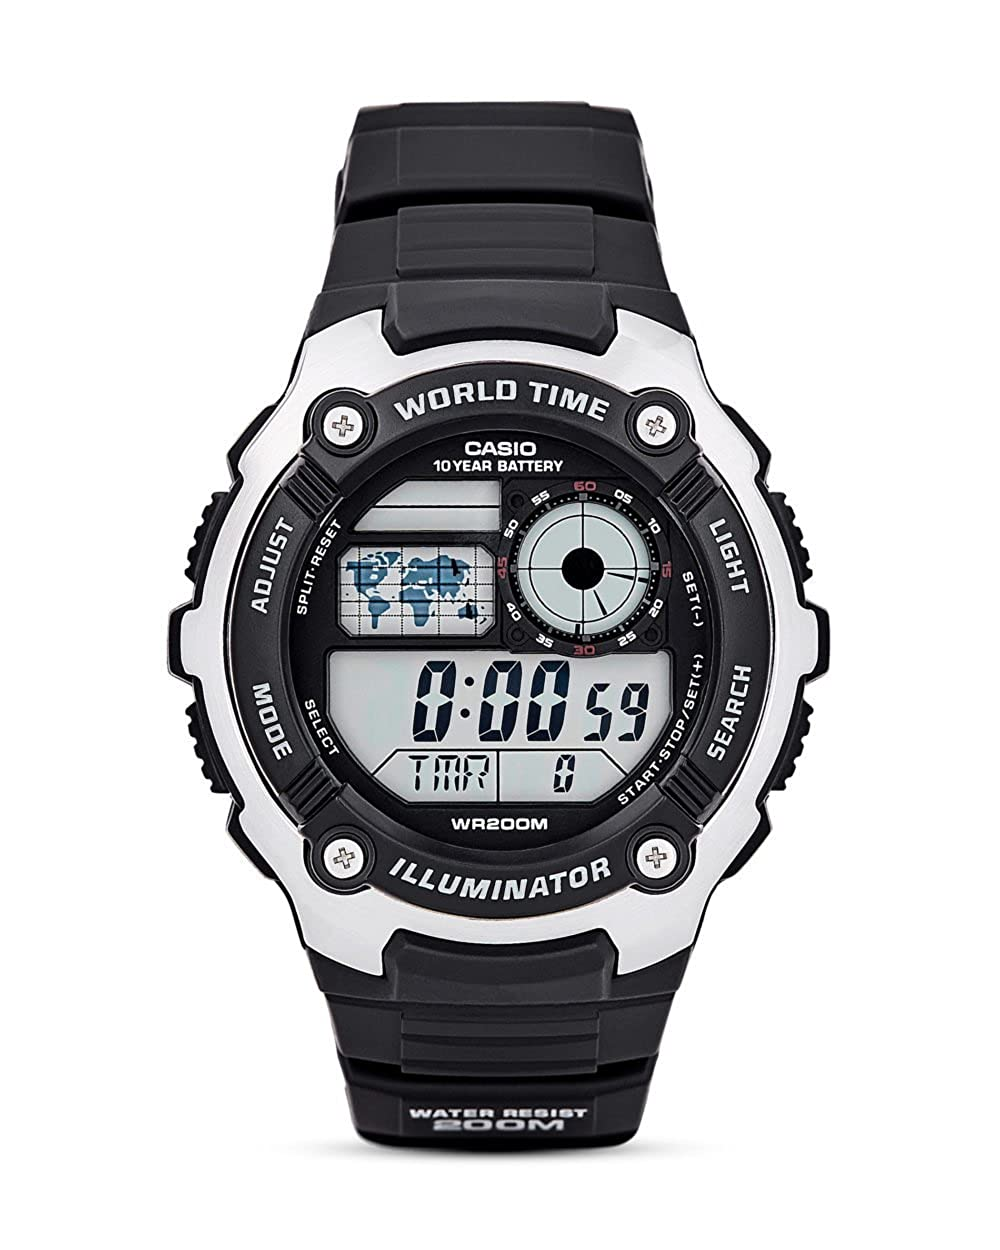 Amazon.com: CASIO AE-2100W-1AWorld time, water resistance LED light: Watches